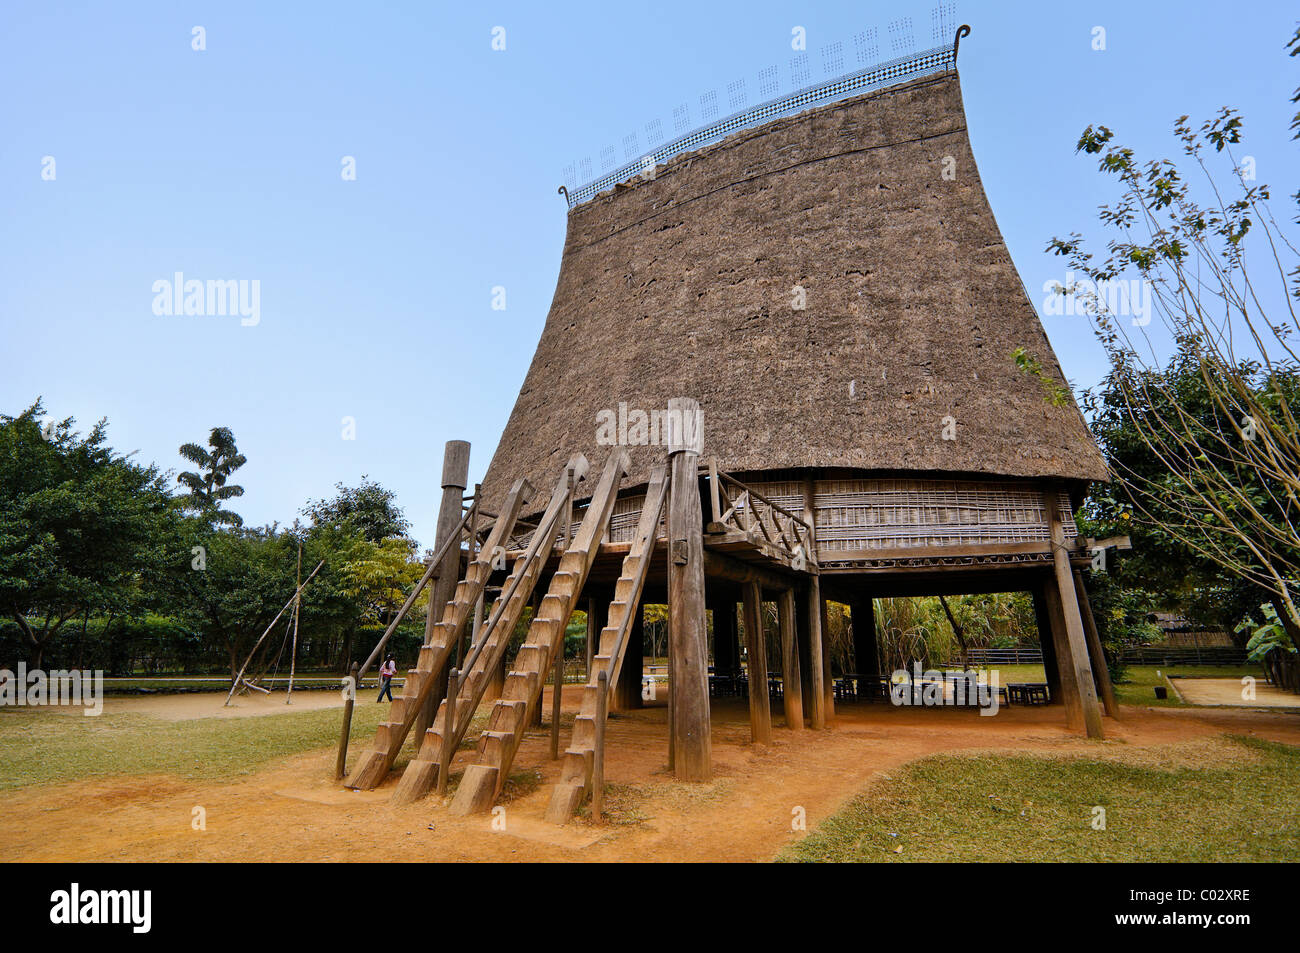 Reconstructed house from the Central Highlands, Museum of Ethnology Hanoi, Vietnam, Southeast Asia - Stock Image